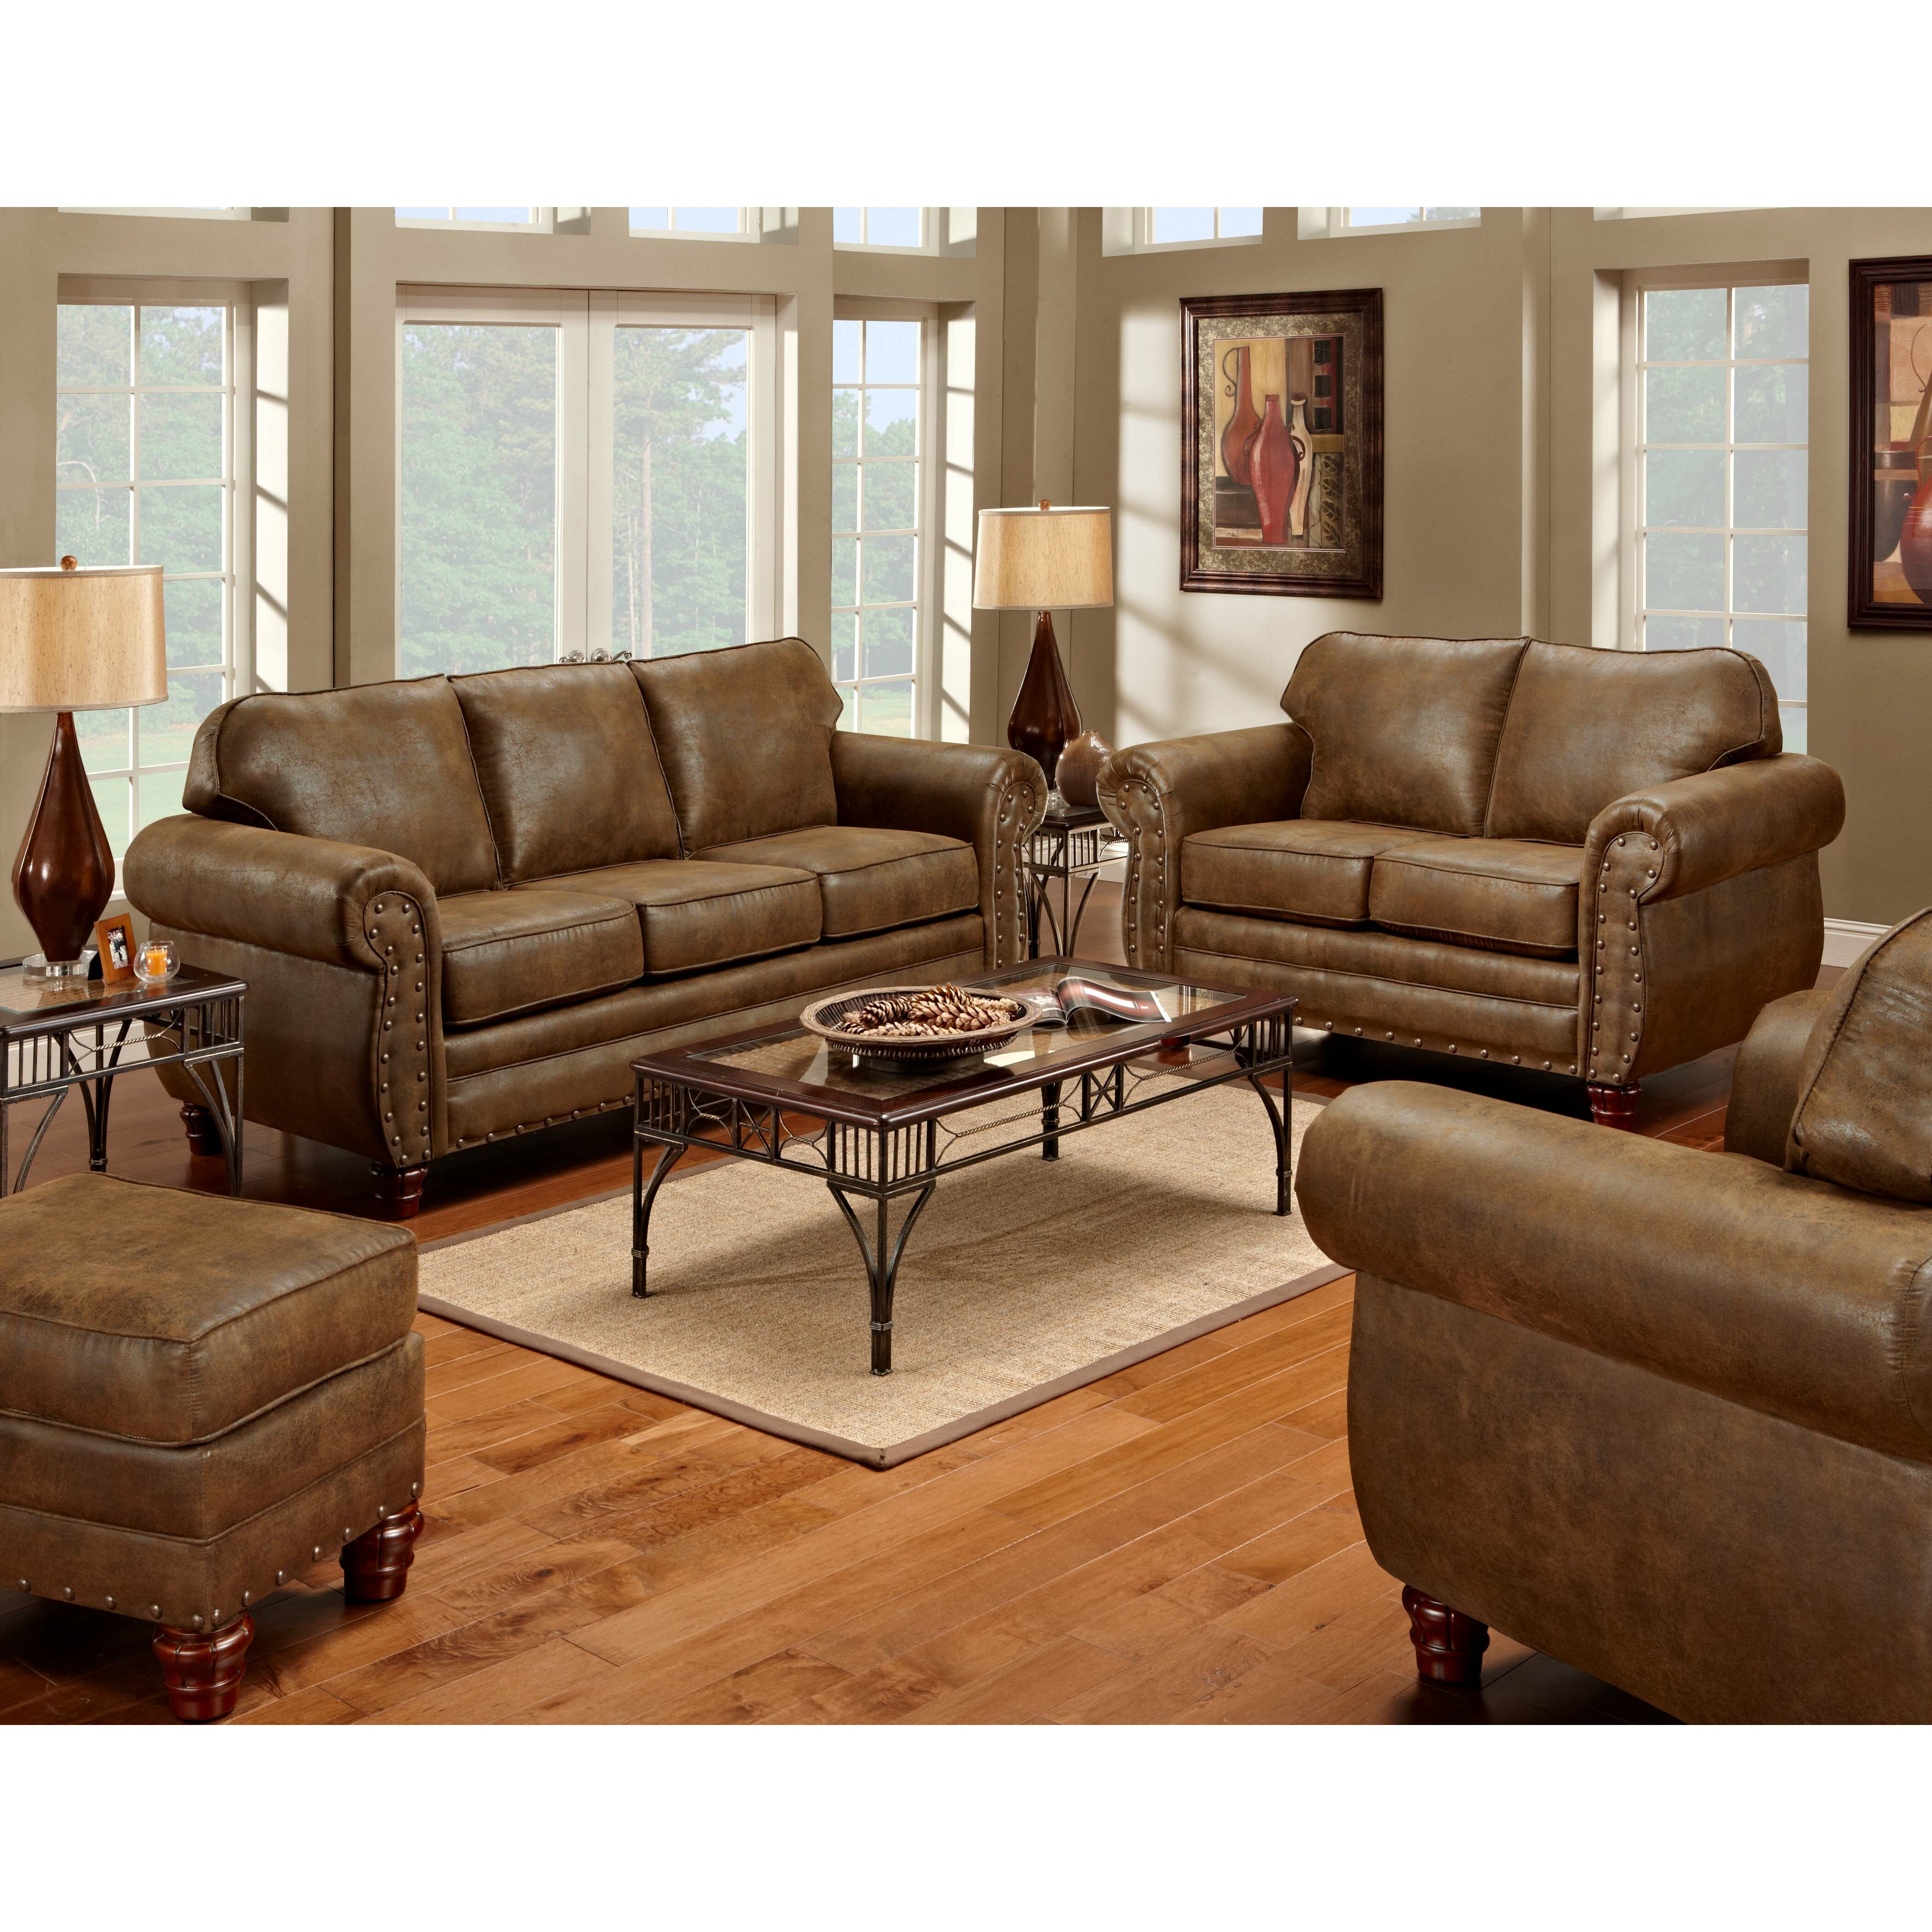 American furniture classics sedona 4 piece living room set for 4 piece sectional sleeper sofa